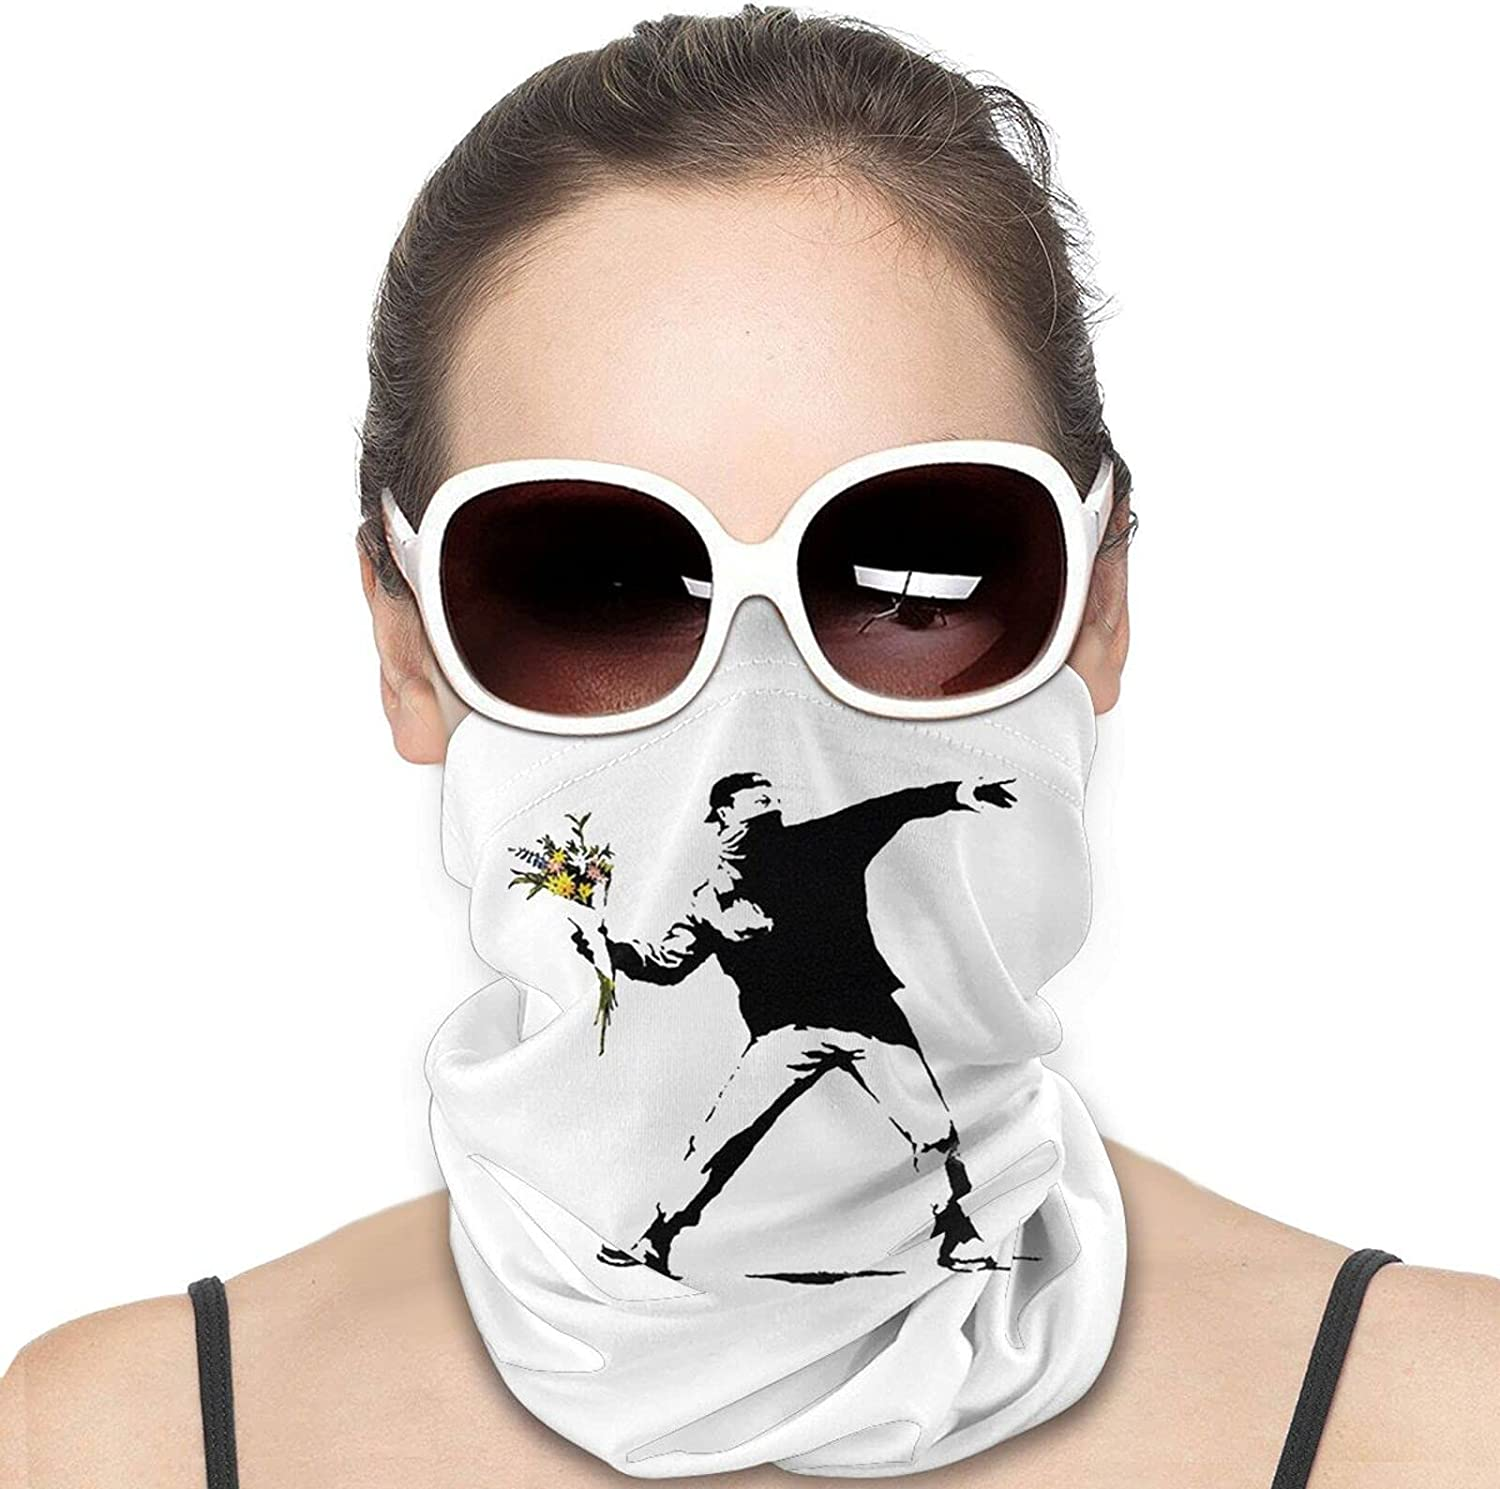 Rage Flower Bomber Stencil Banksy Round Neck Gaiter Bandnas Face Cover Uv Protection Prevent bask in Ice Scarf Headbands Perfect for Motorcycle Cycling Running Festival Raves Outdoors